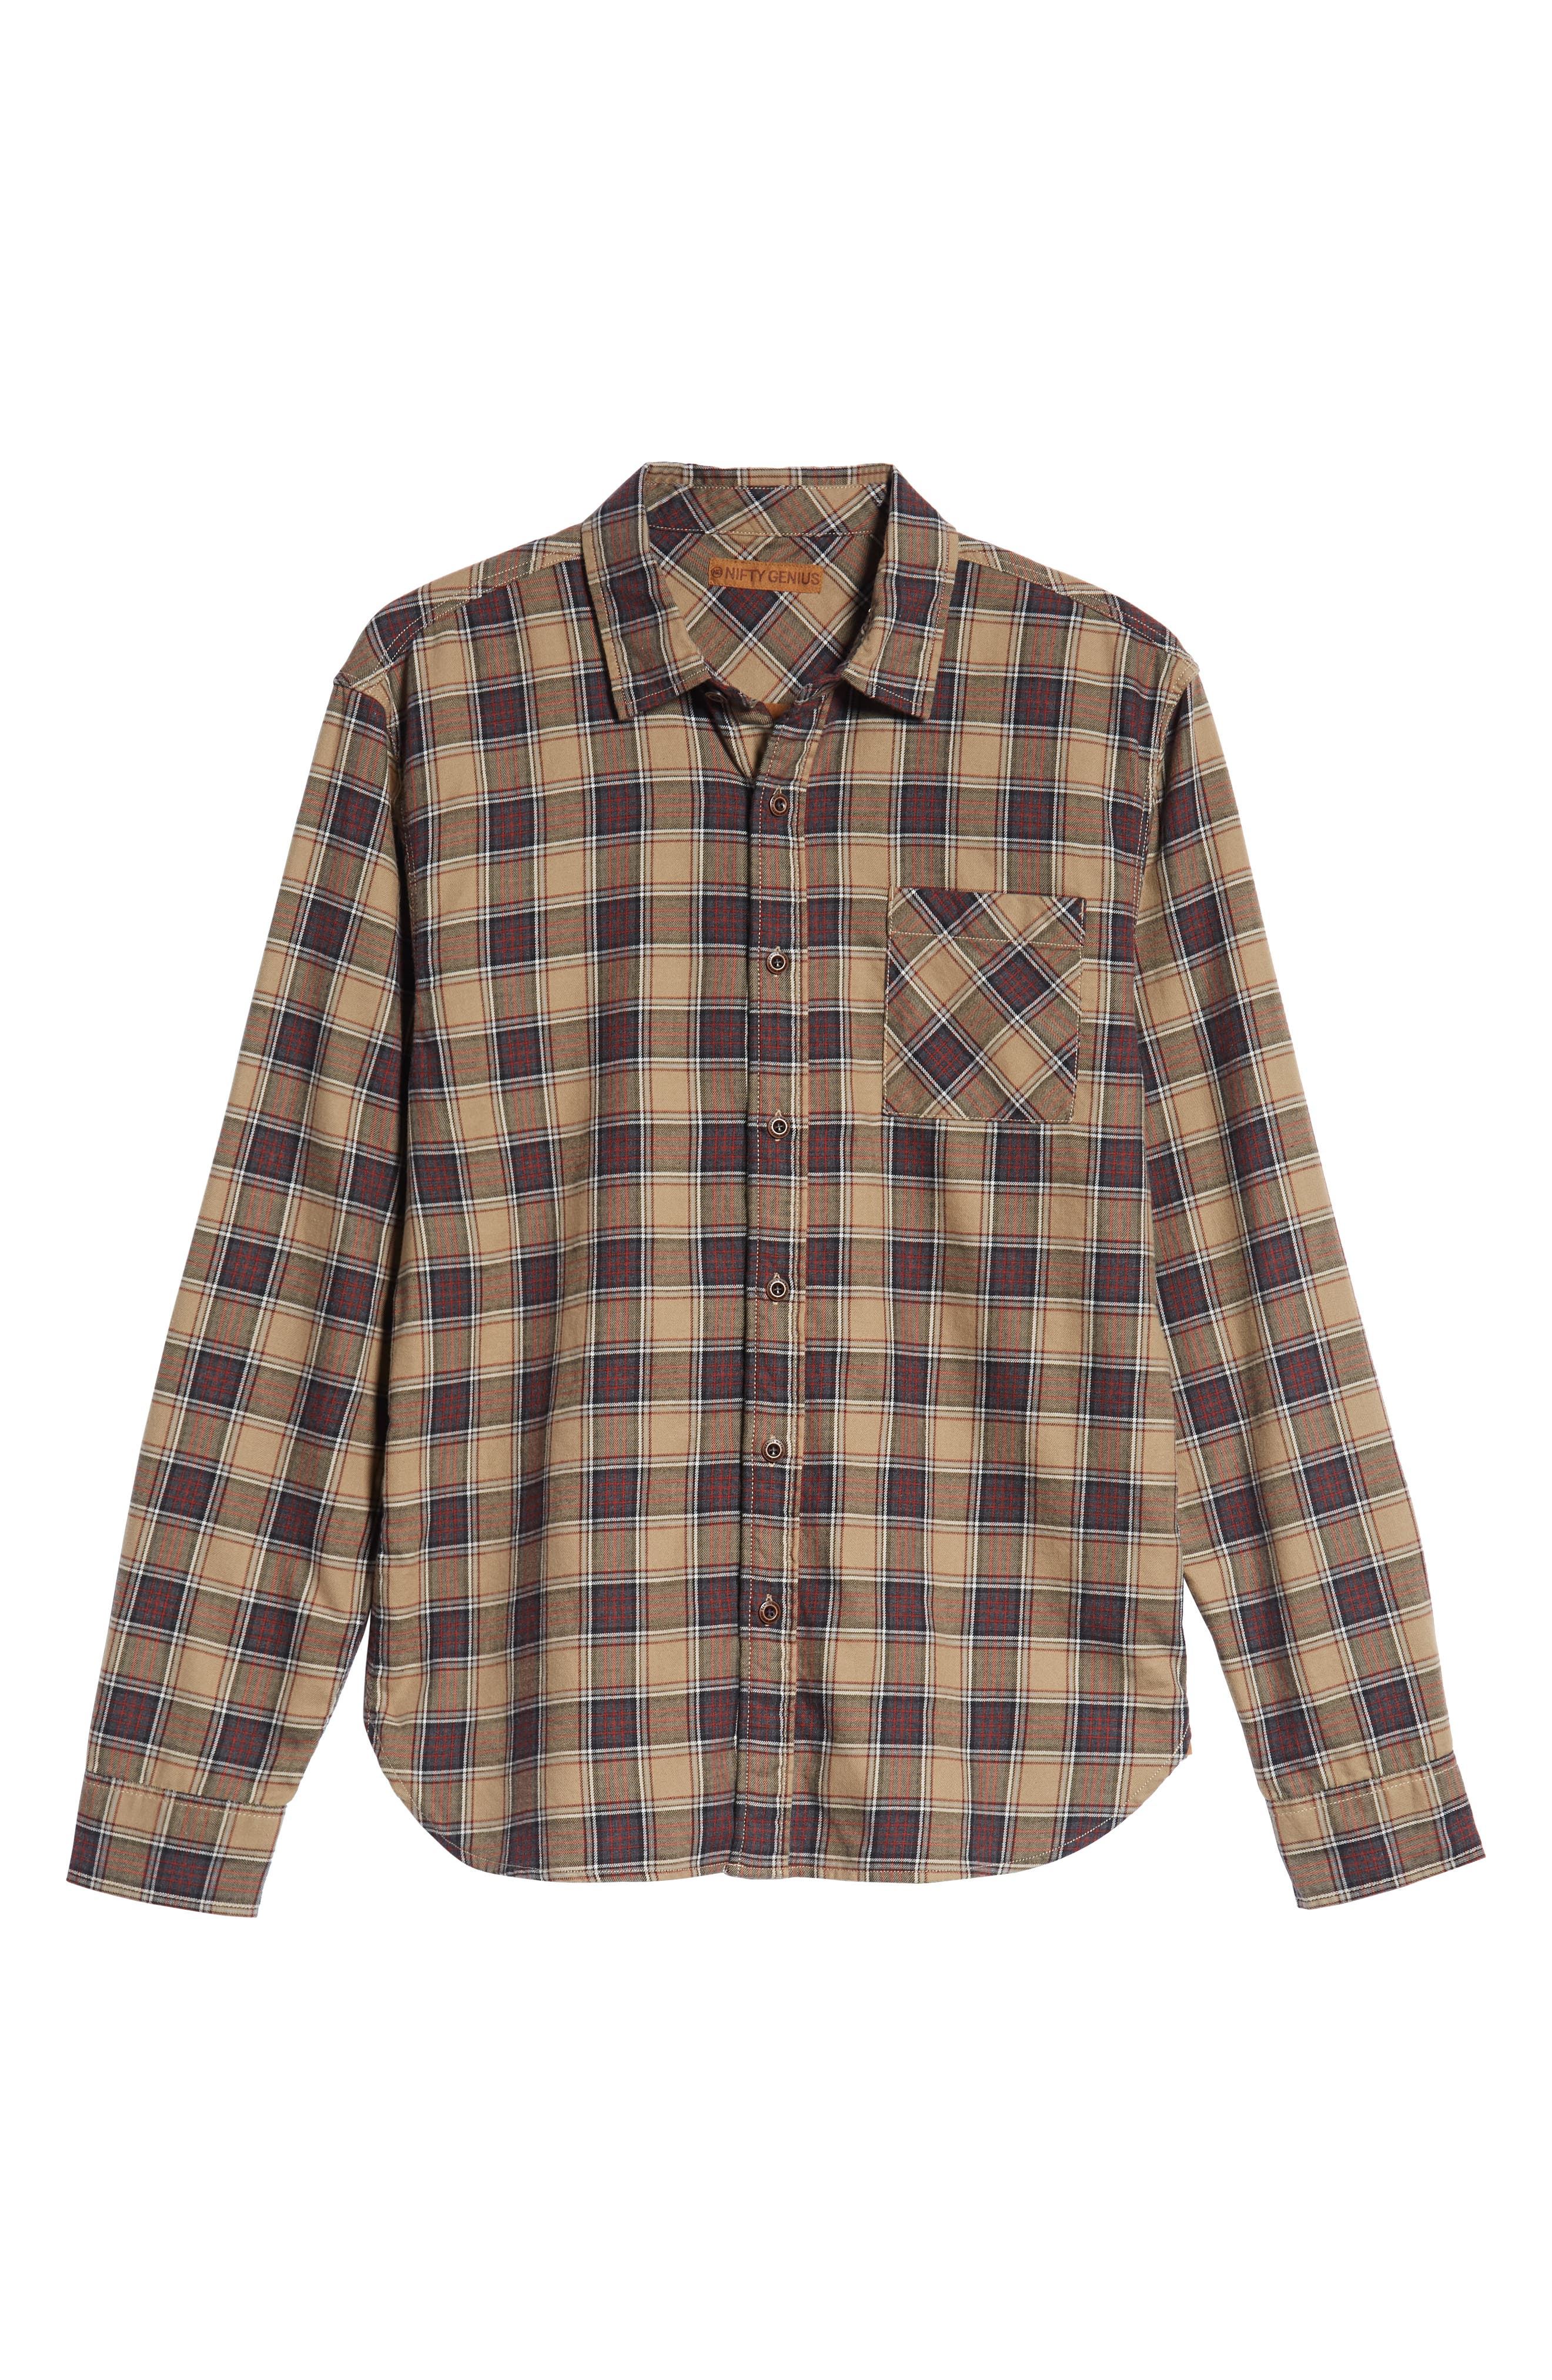 Truman Check Sport Shirt,                             Alternate thumbnail 5, color,                             GREY/ GOLD/ RED